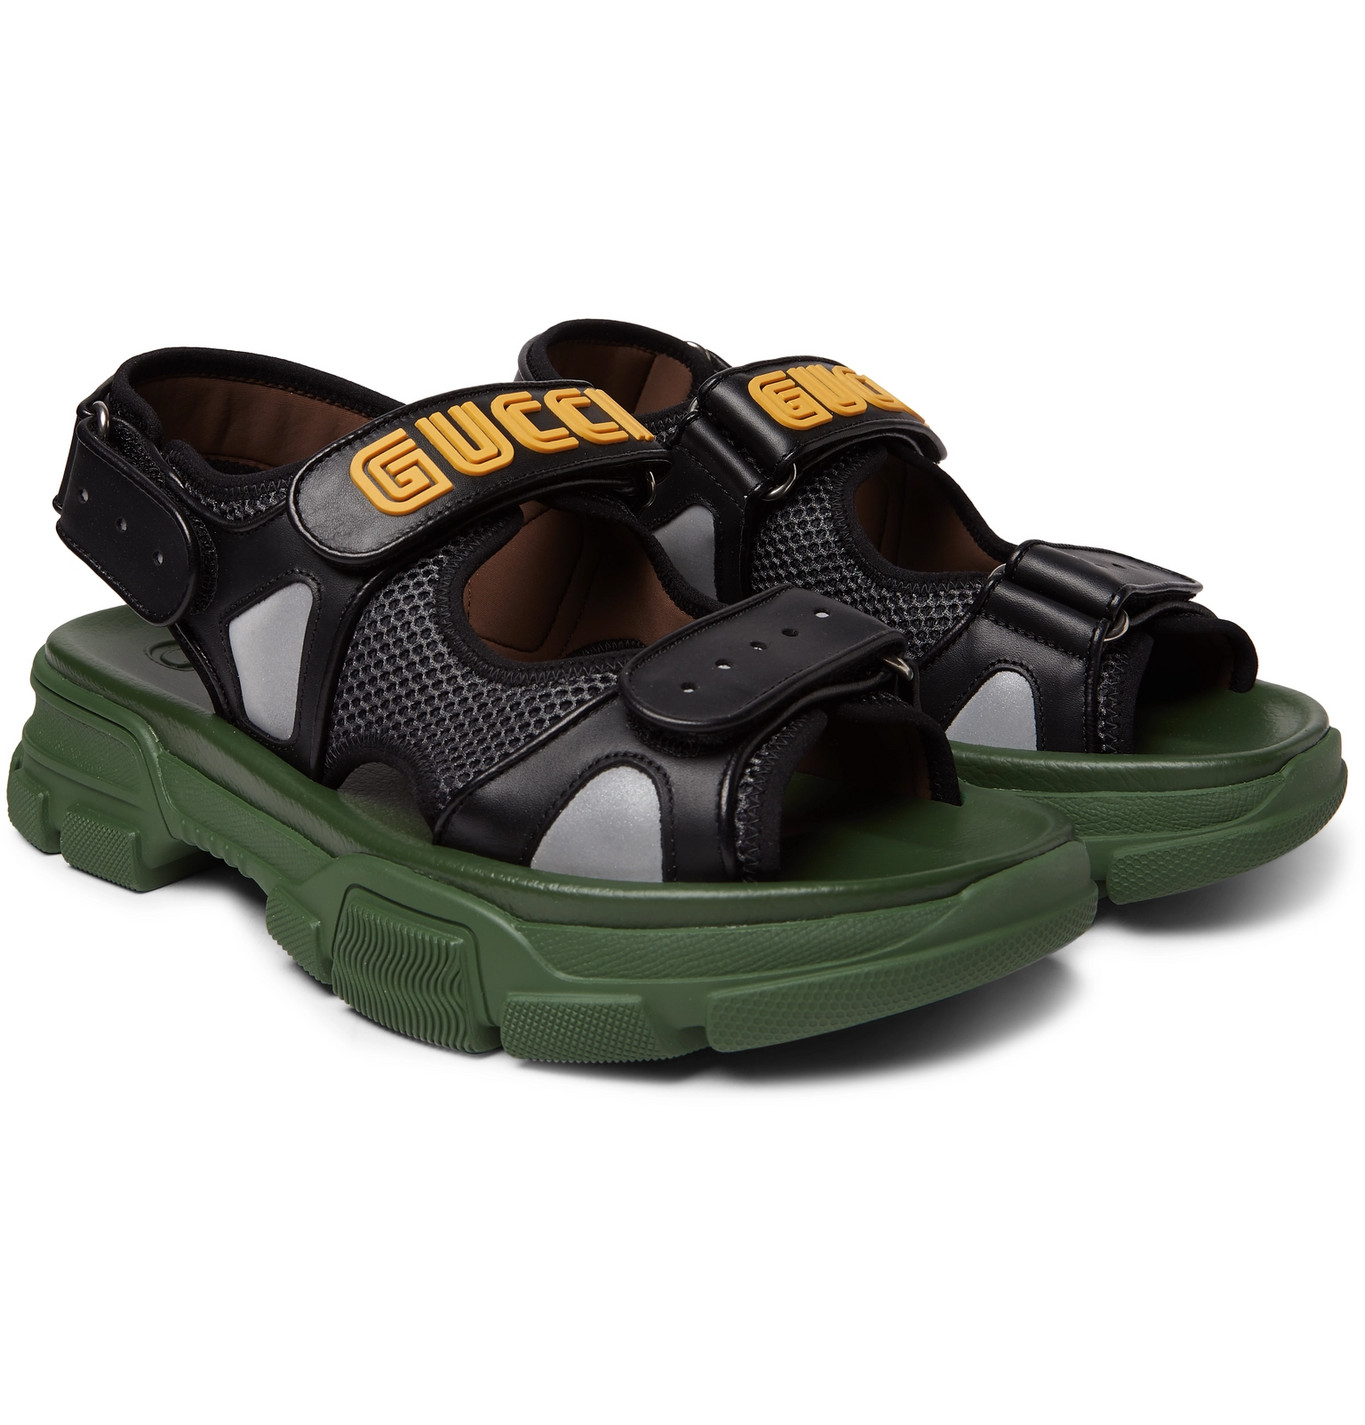 Gucci - Leather and Mesh Sandals - Men